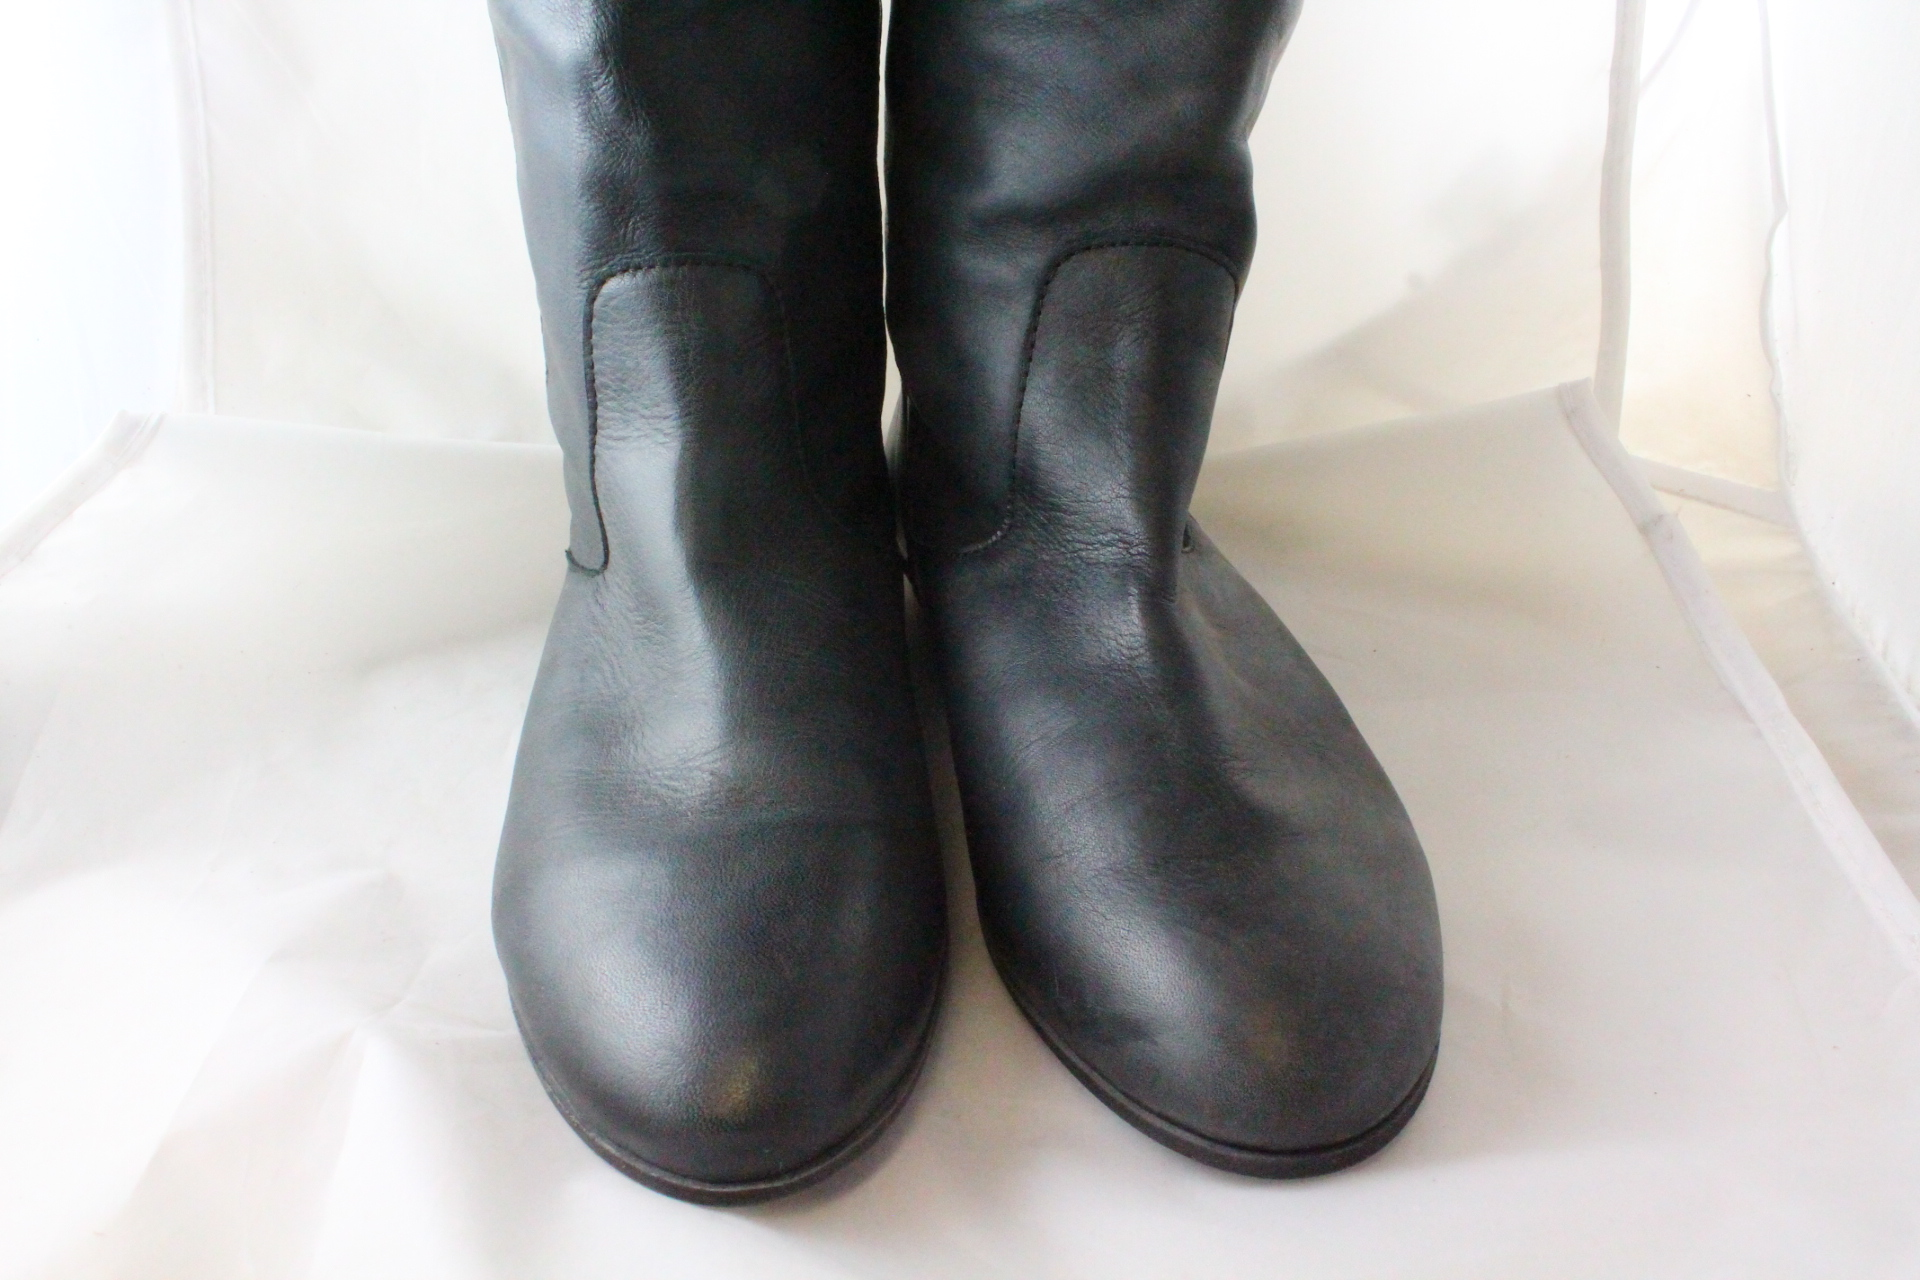 05d13622b95ba Womens Office Ariel Back Zip Black Leather Boots  Ex Display